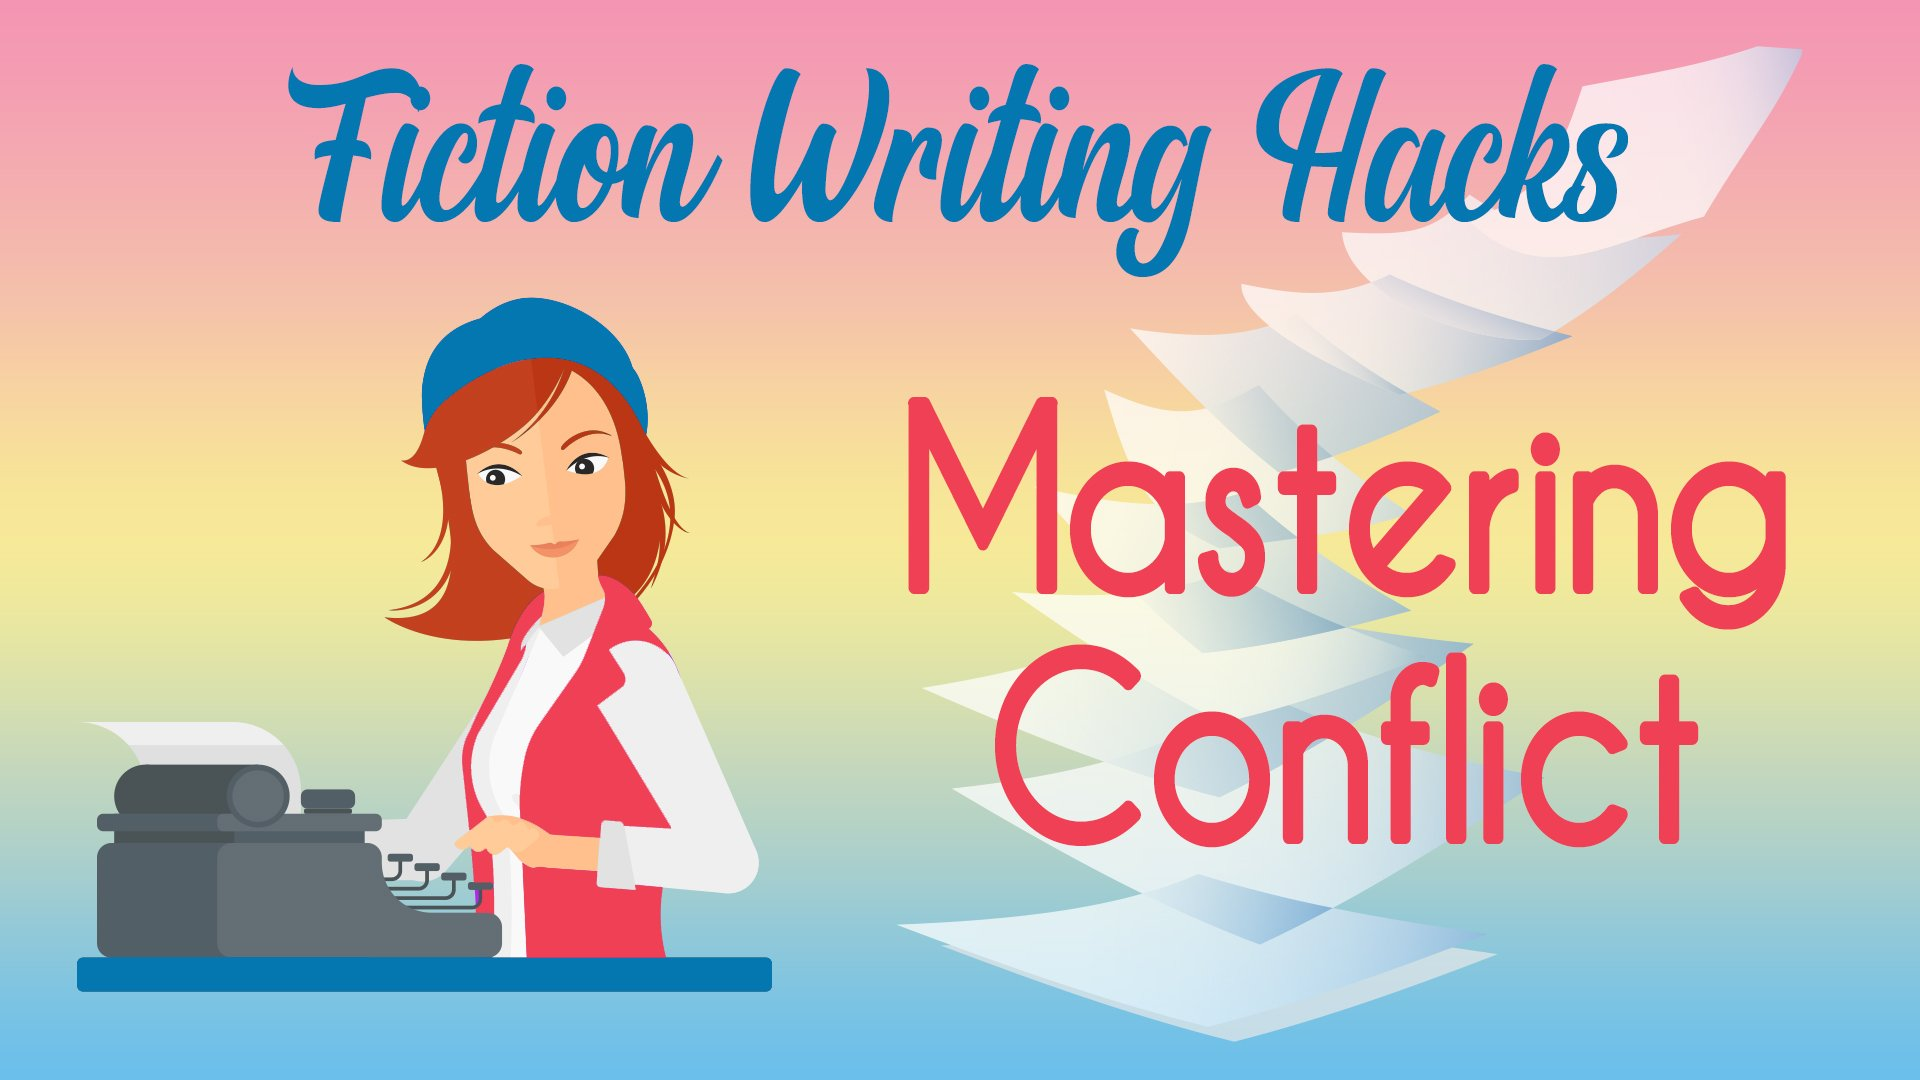 Fiction Writing Hacks: Mastering Conflict